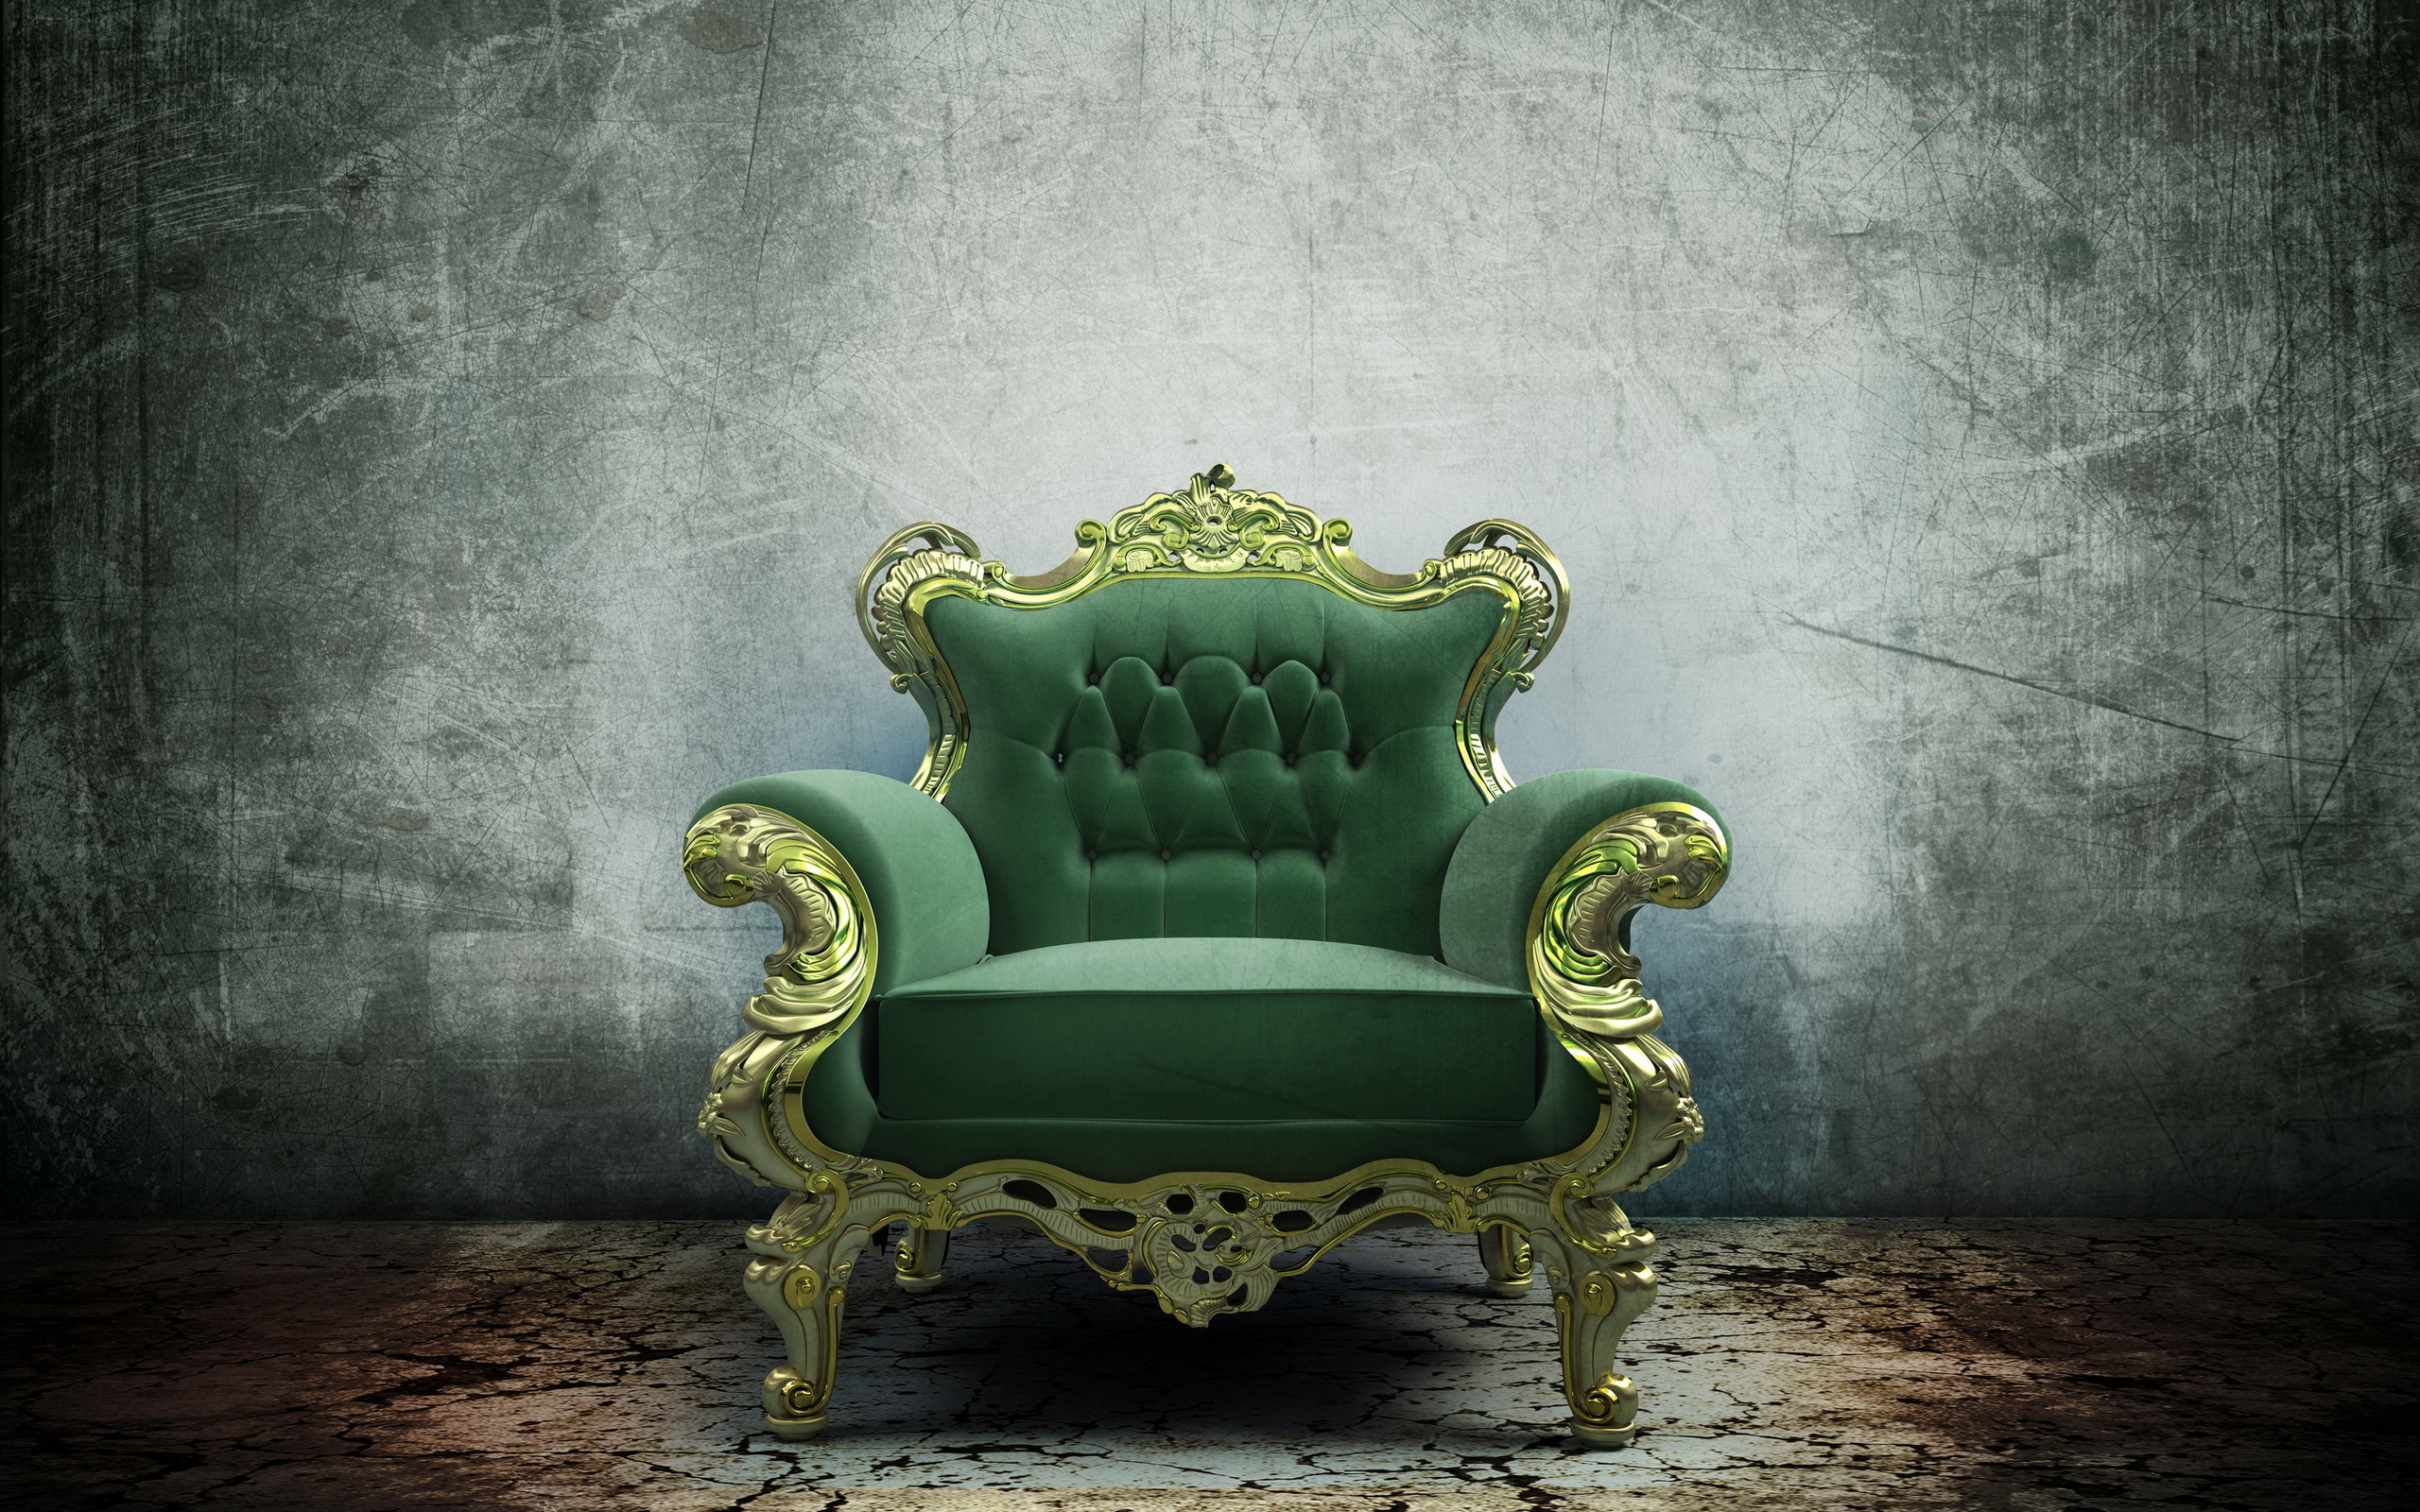 chair images hd swinging chairs outdoor furniture full wallpaper and background image